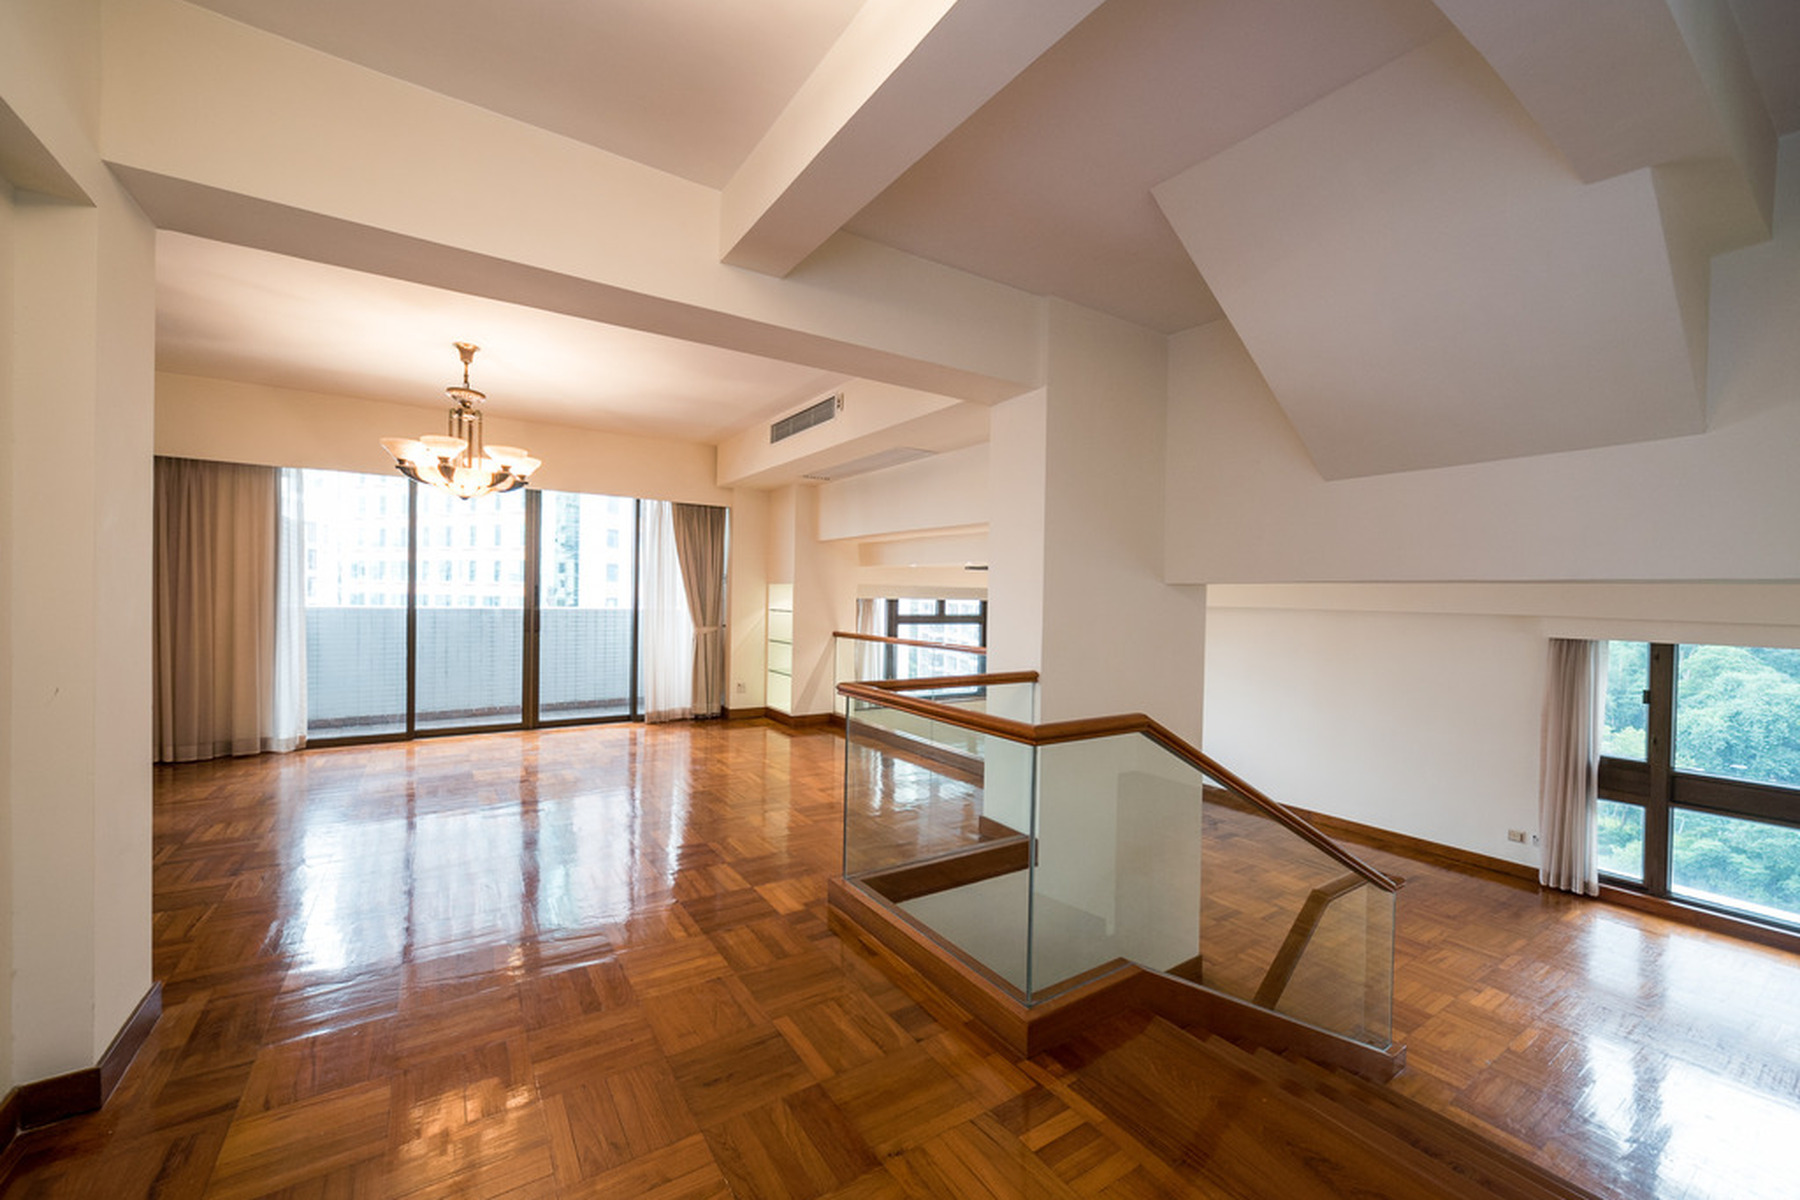 Duplex for Sale at Robinson Road, 1 Other Hong Kong, Hong Kong